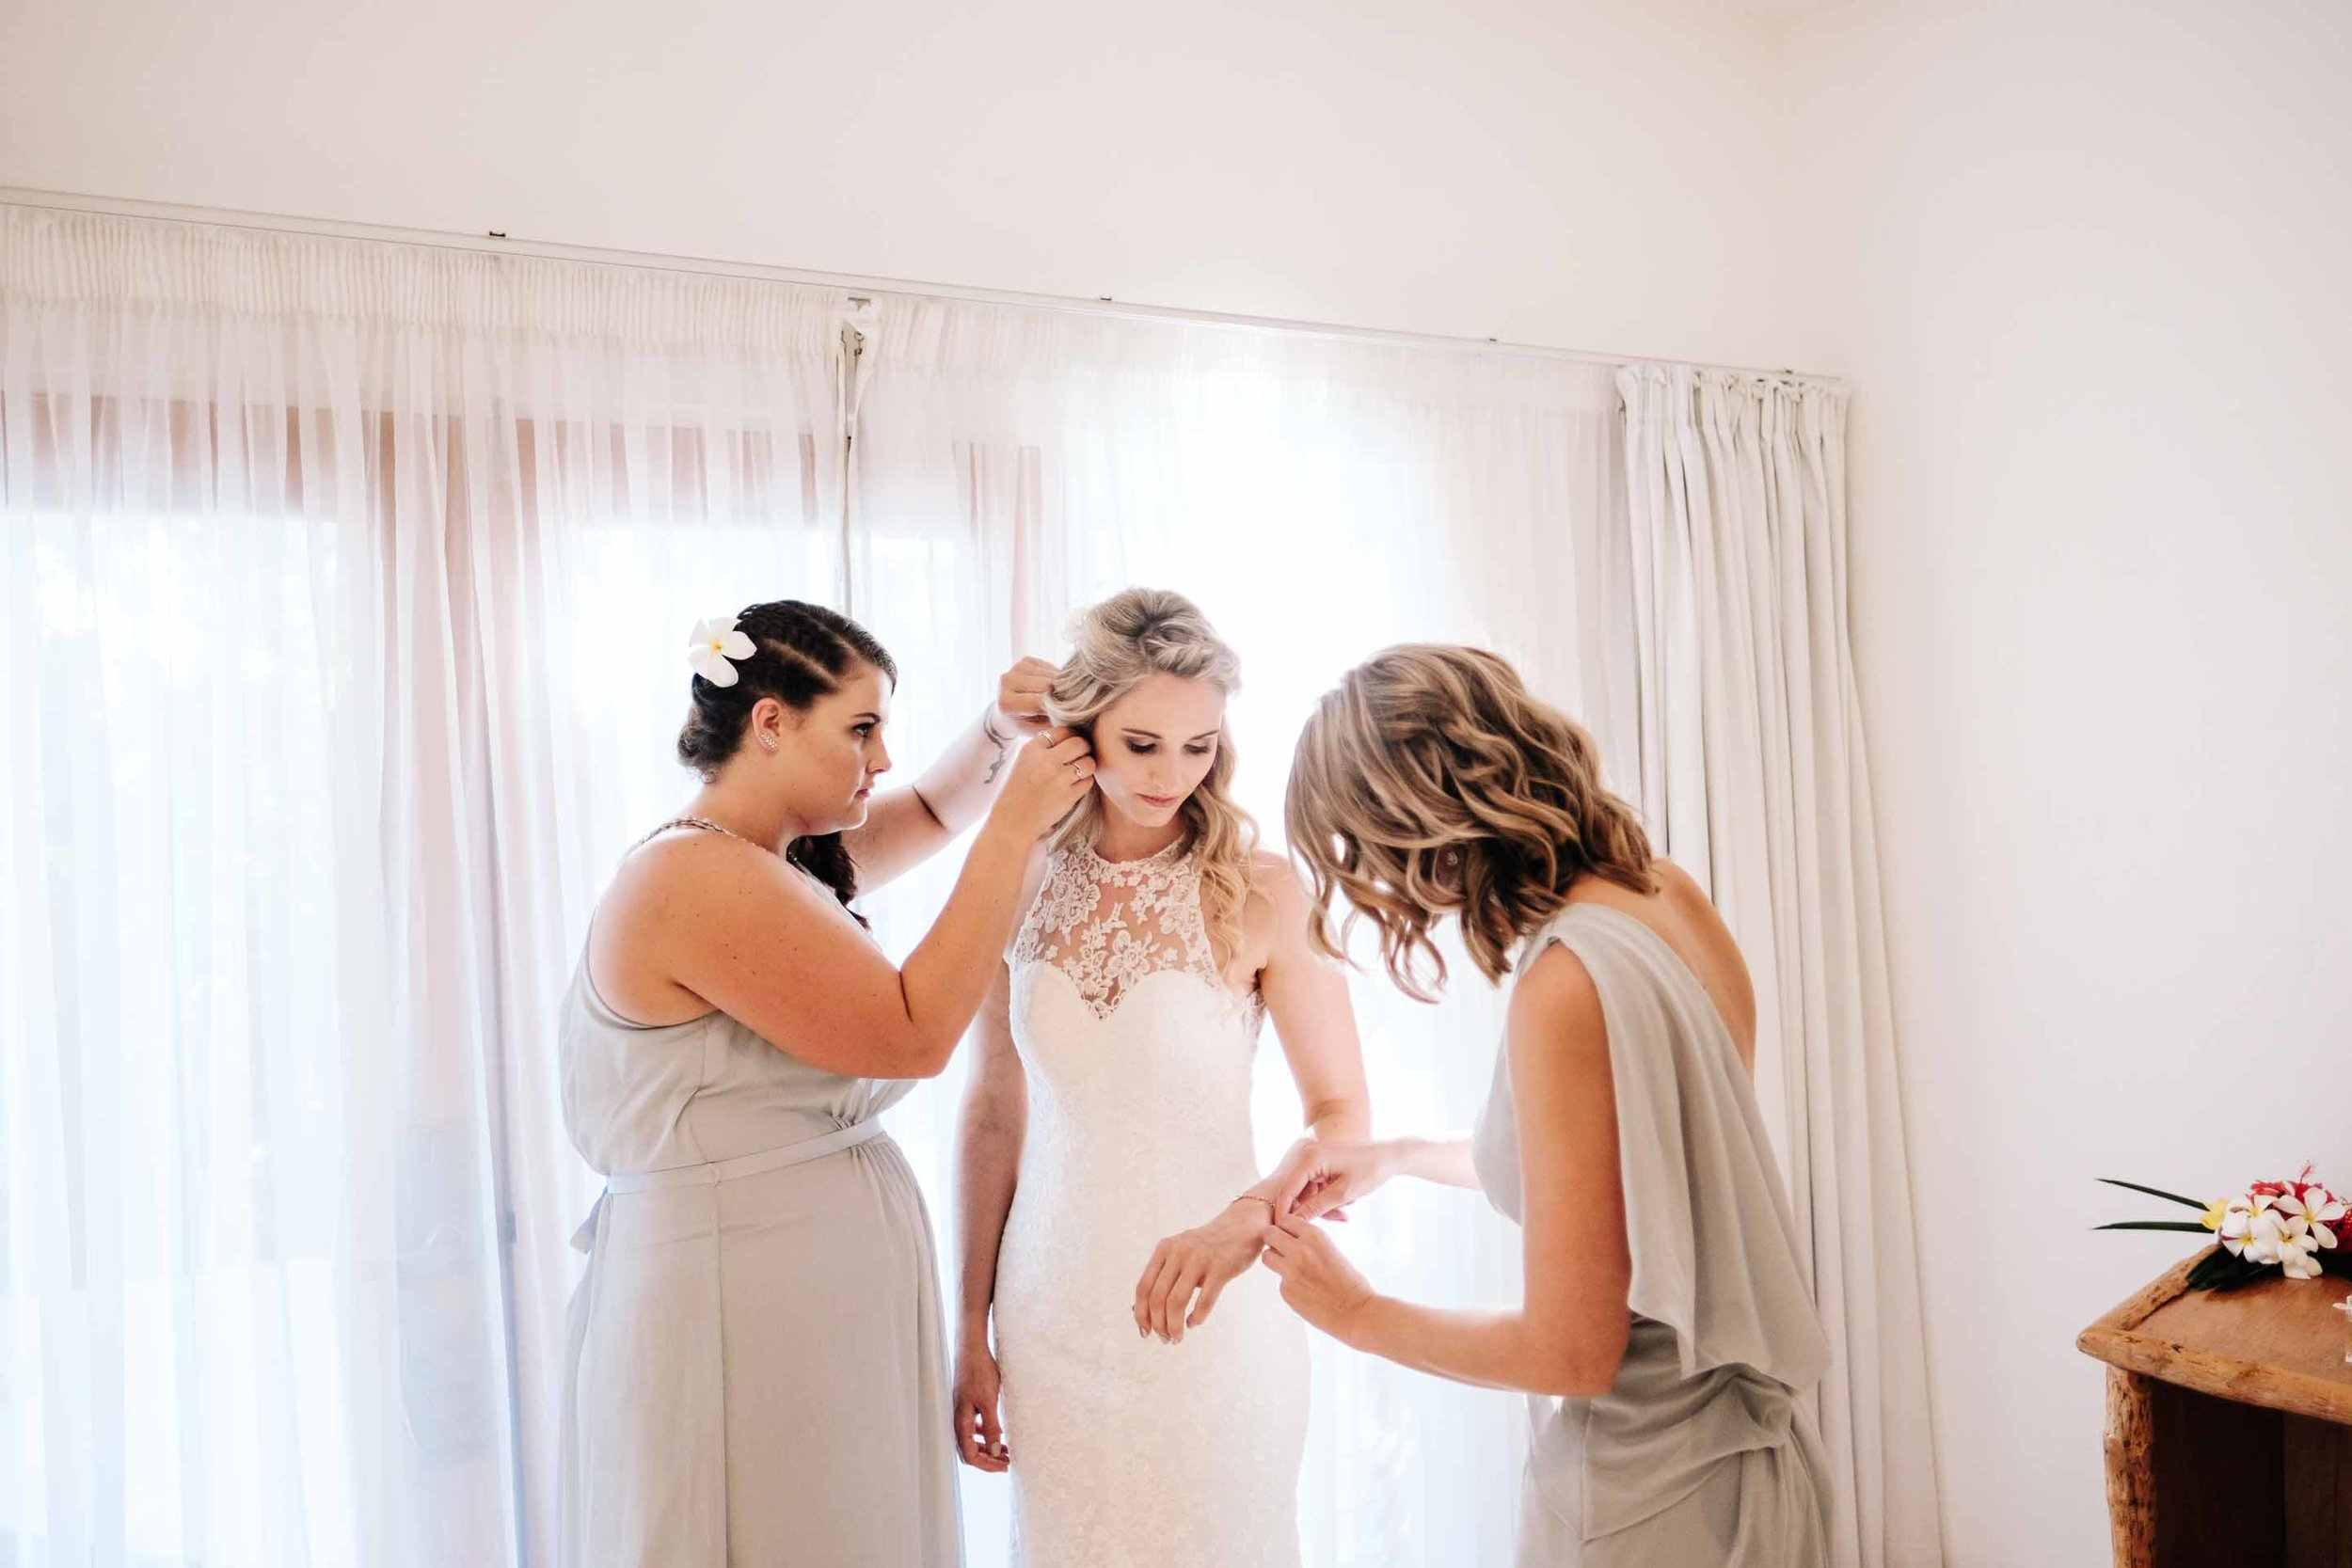 the bridesmaids helping the bride with her jewellery